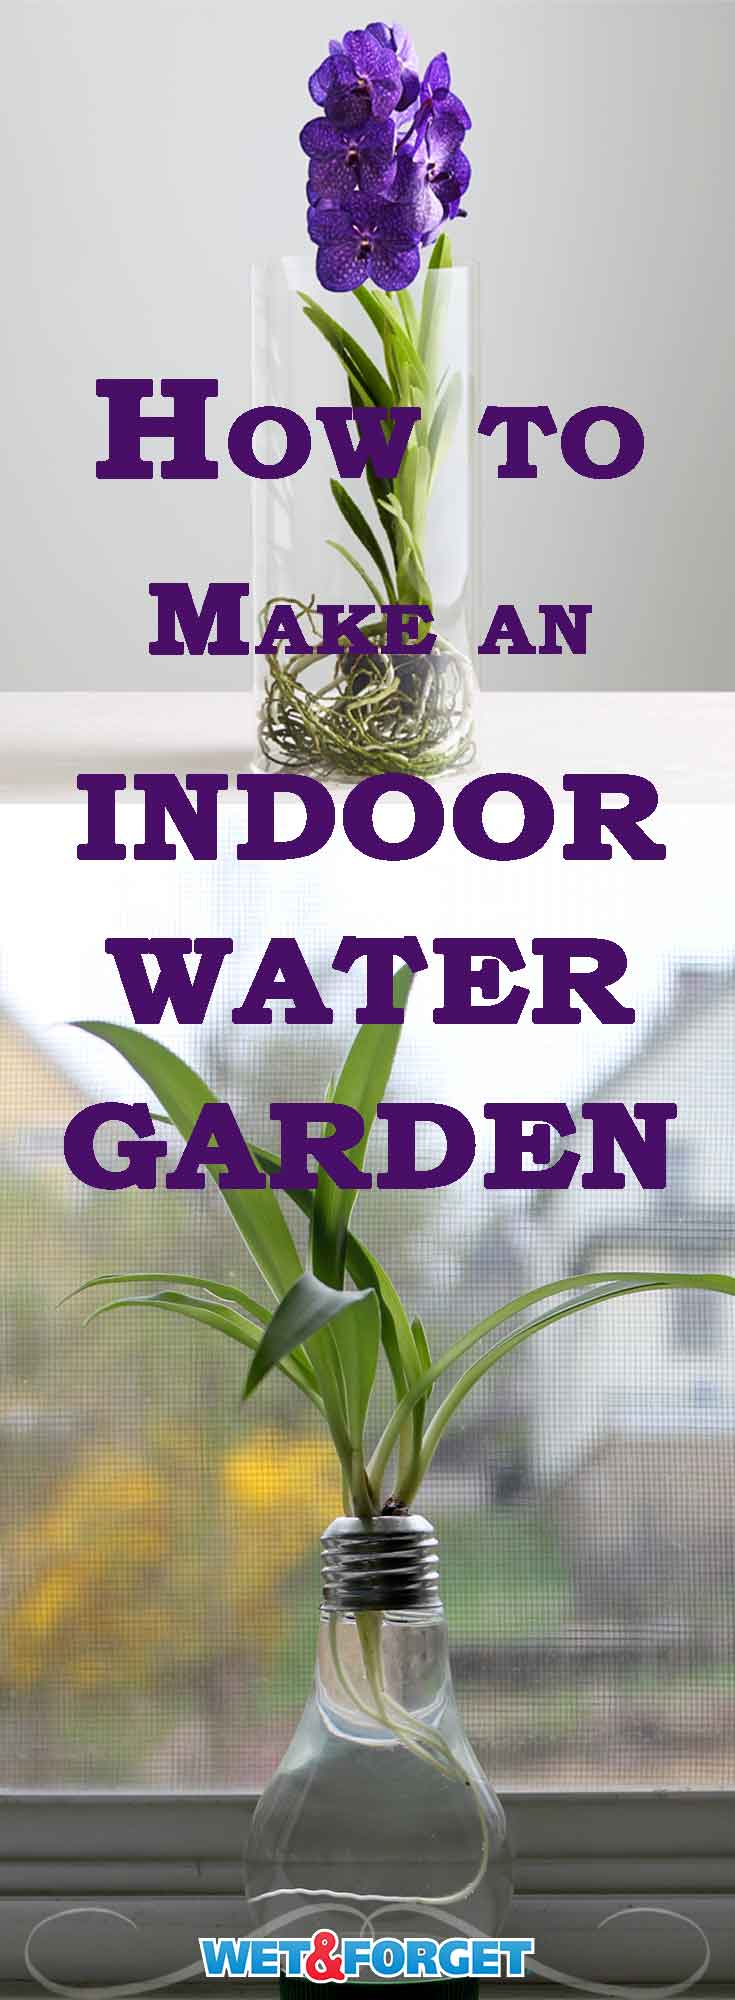 Brighten up your home with an indoor water garden! Learn how to create your own with our easy guide.